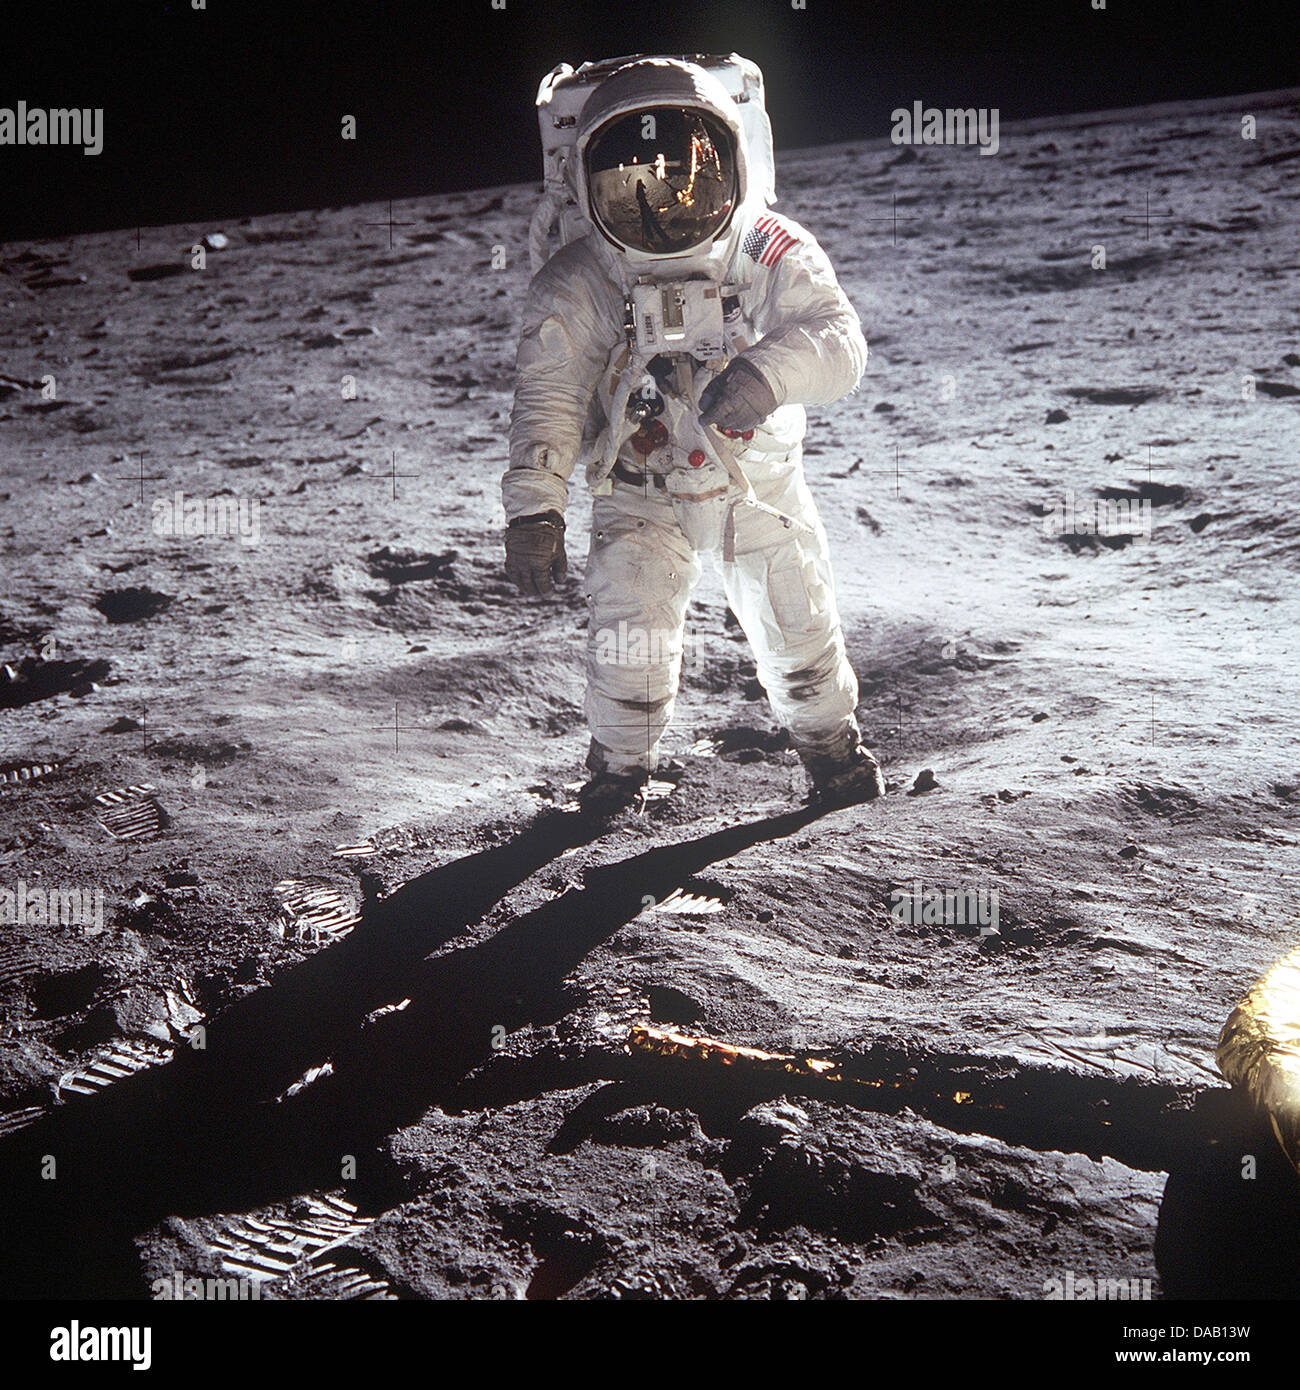 BUZZ ALDRIN  US astronaut walking on the Moon 21 July 1969 on the Apollo 11 mission. - Stock Image